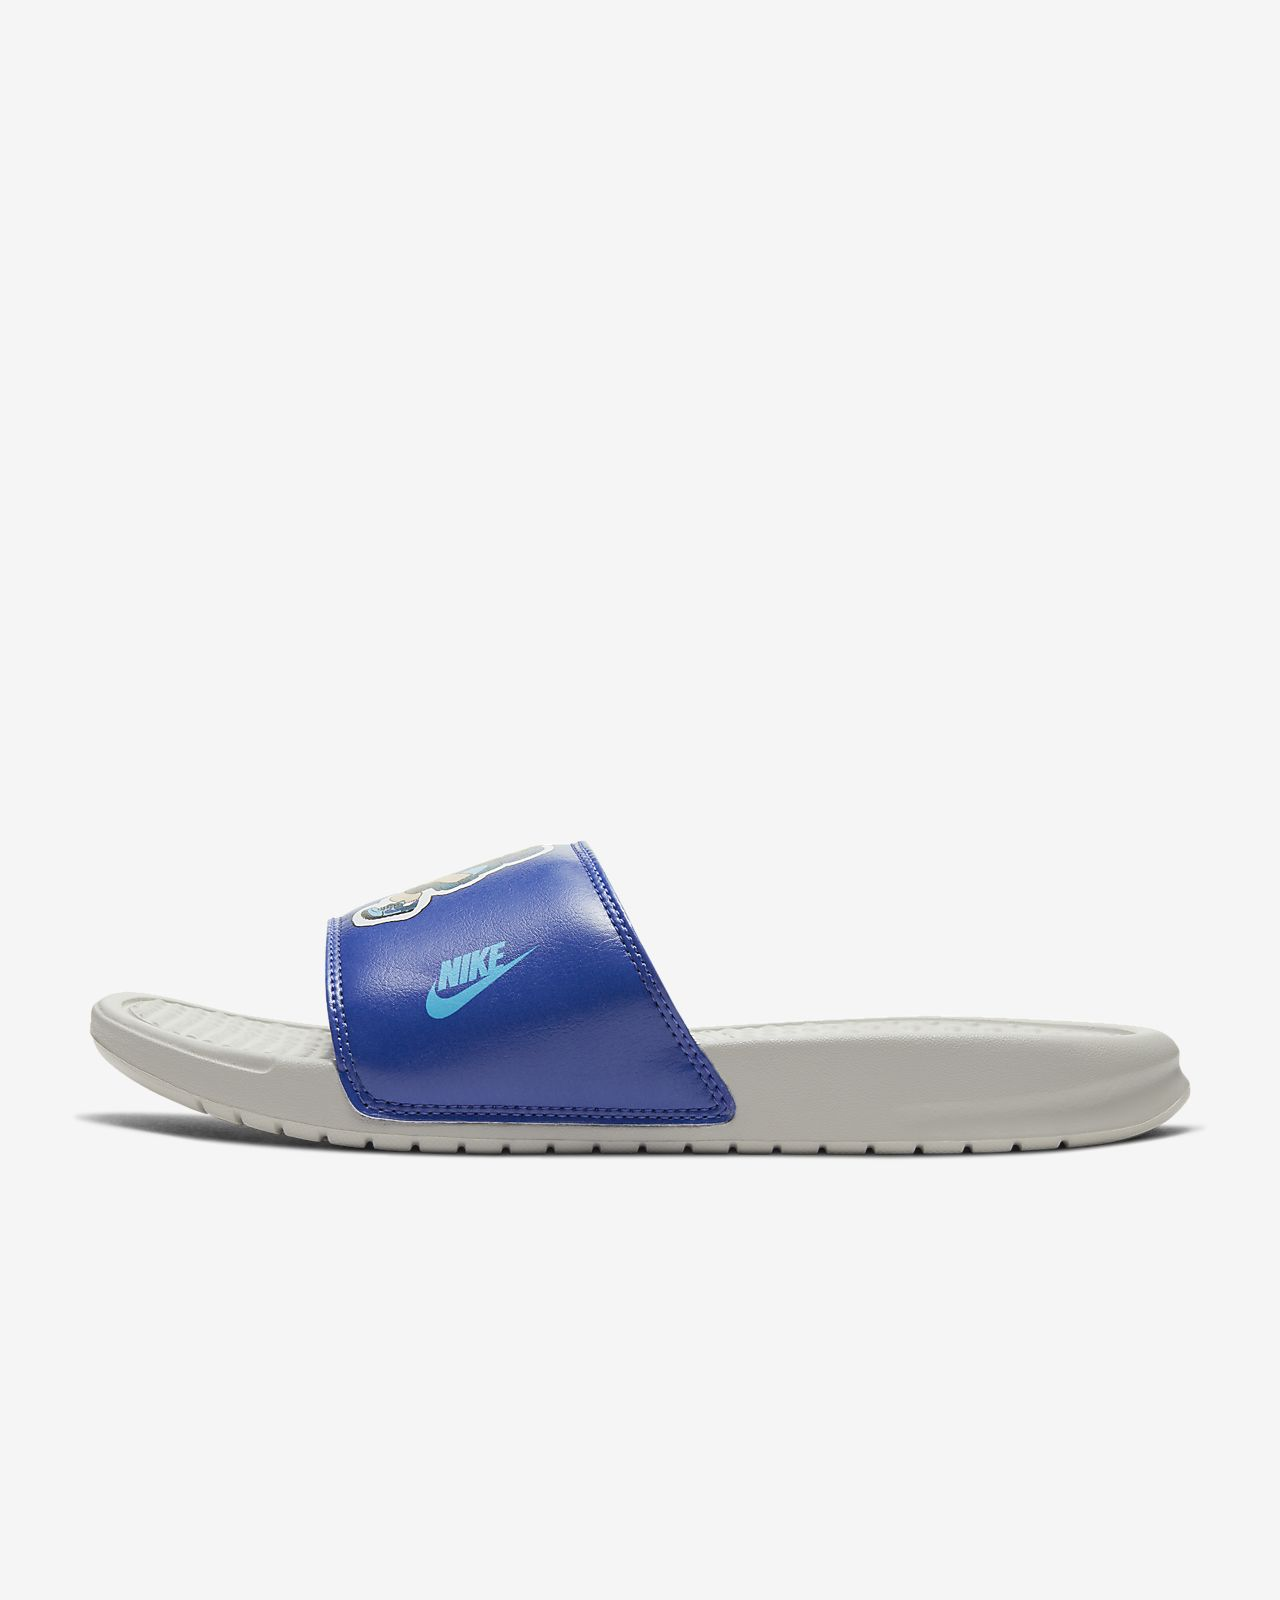 Nike Benassi JDI Men's Slide